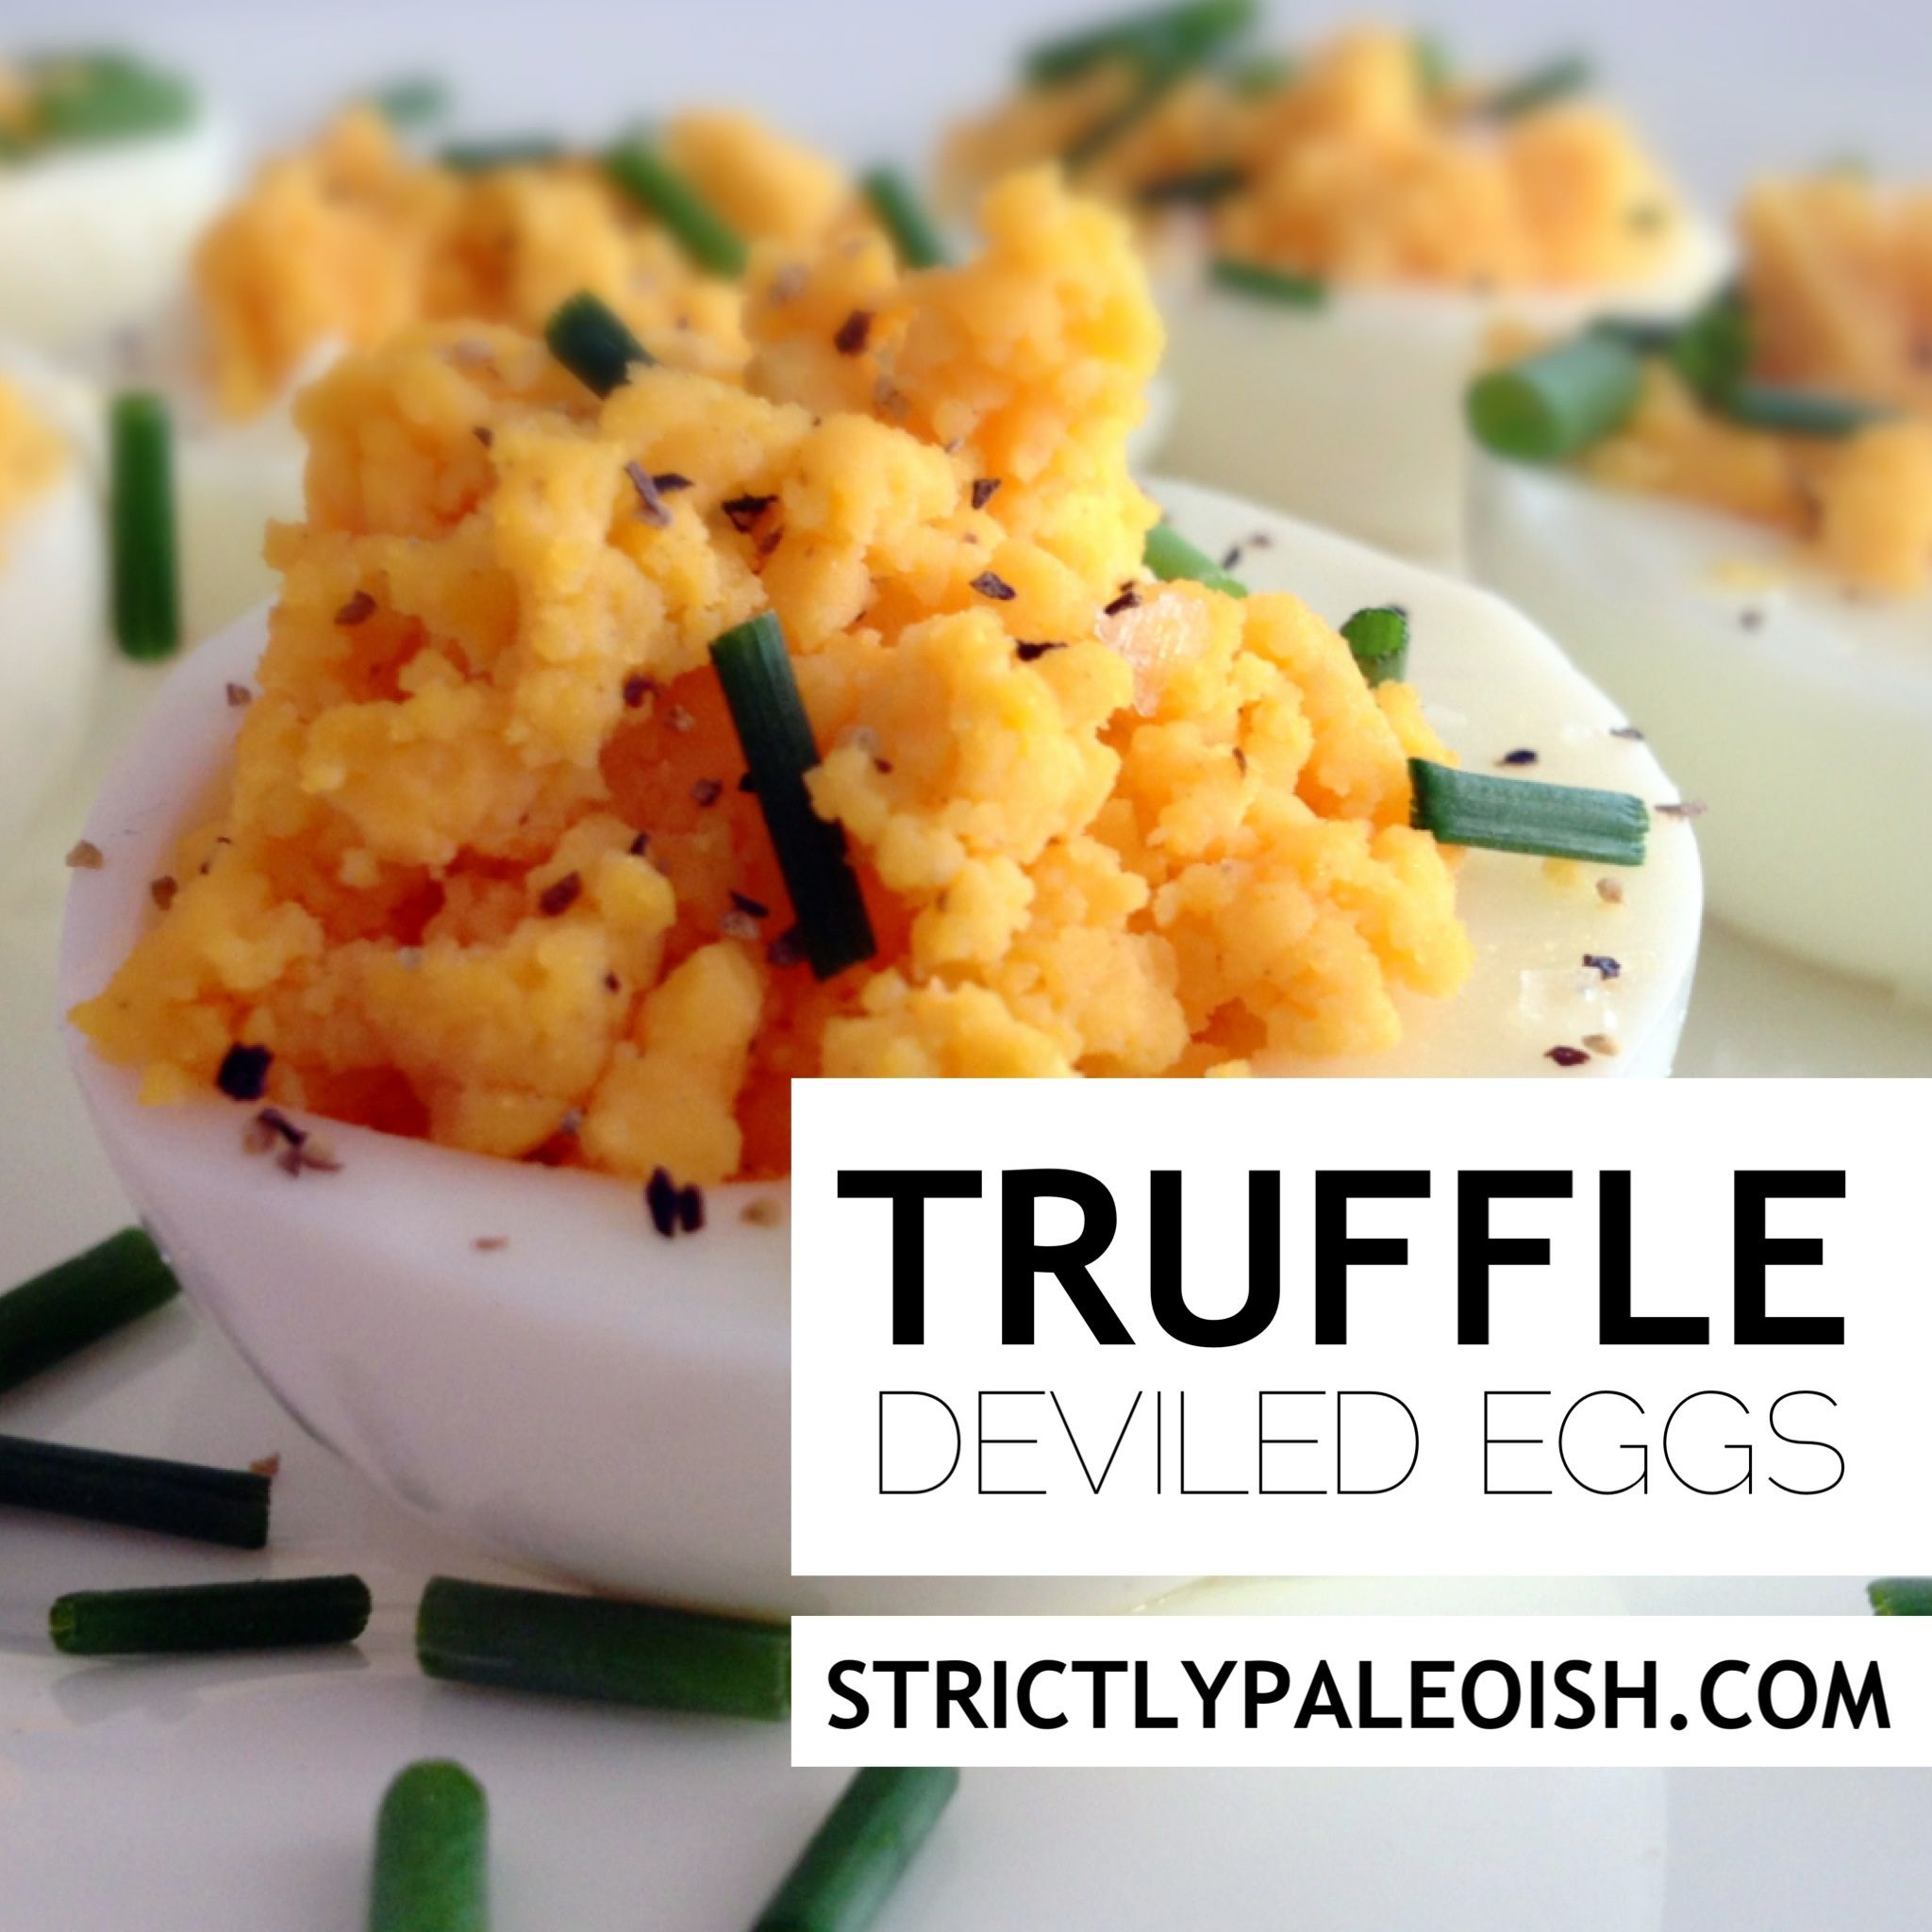 Truffle deviled eggs strictly paleoh paleo egg recipes truffle deviled eggs the foodee project forumfinder Gallery